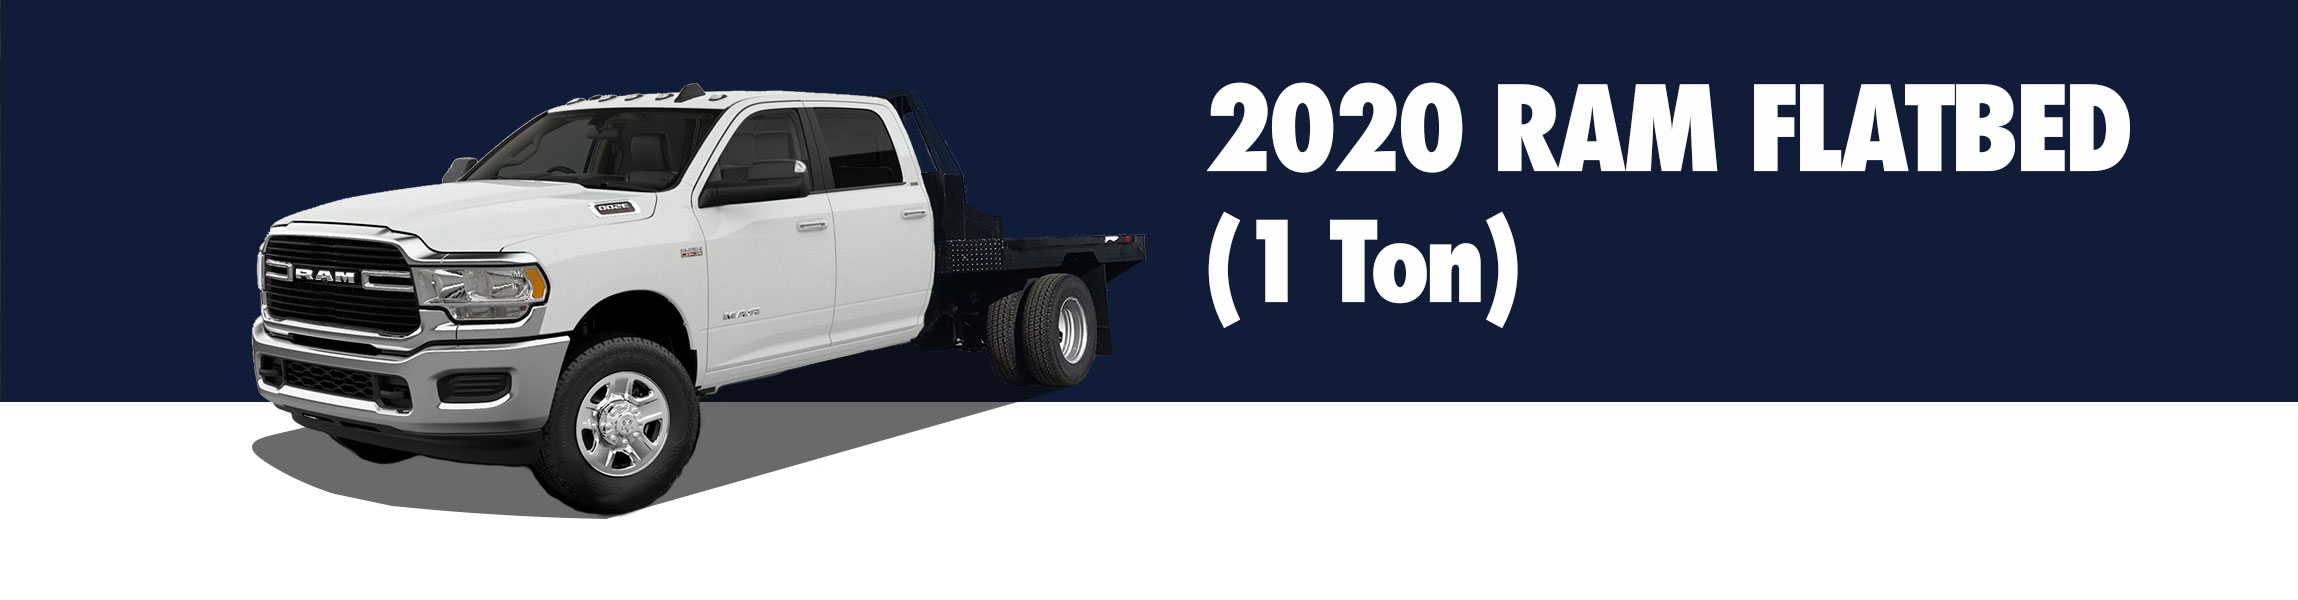 1 Ton Pickup Flat bed